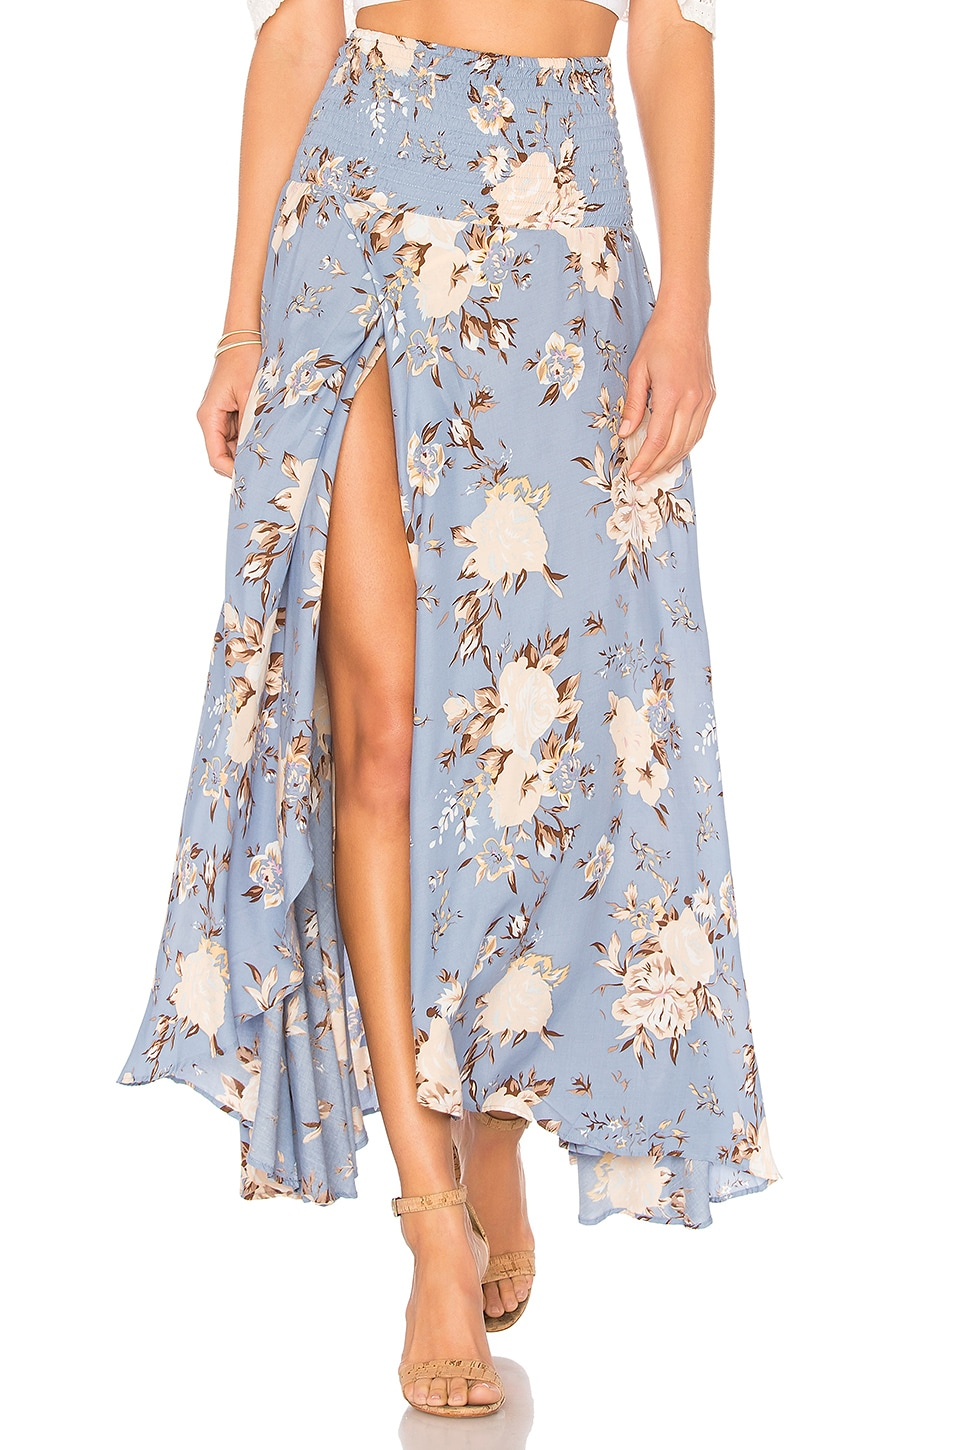 AUGUSTE Shirred Waist Maxi Skirt in Blue Vintage Blooms